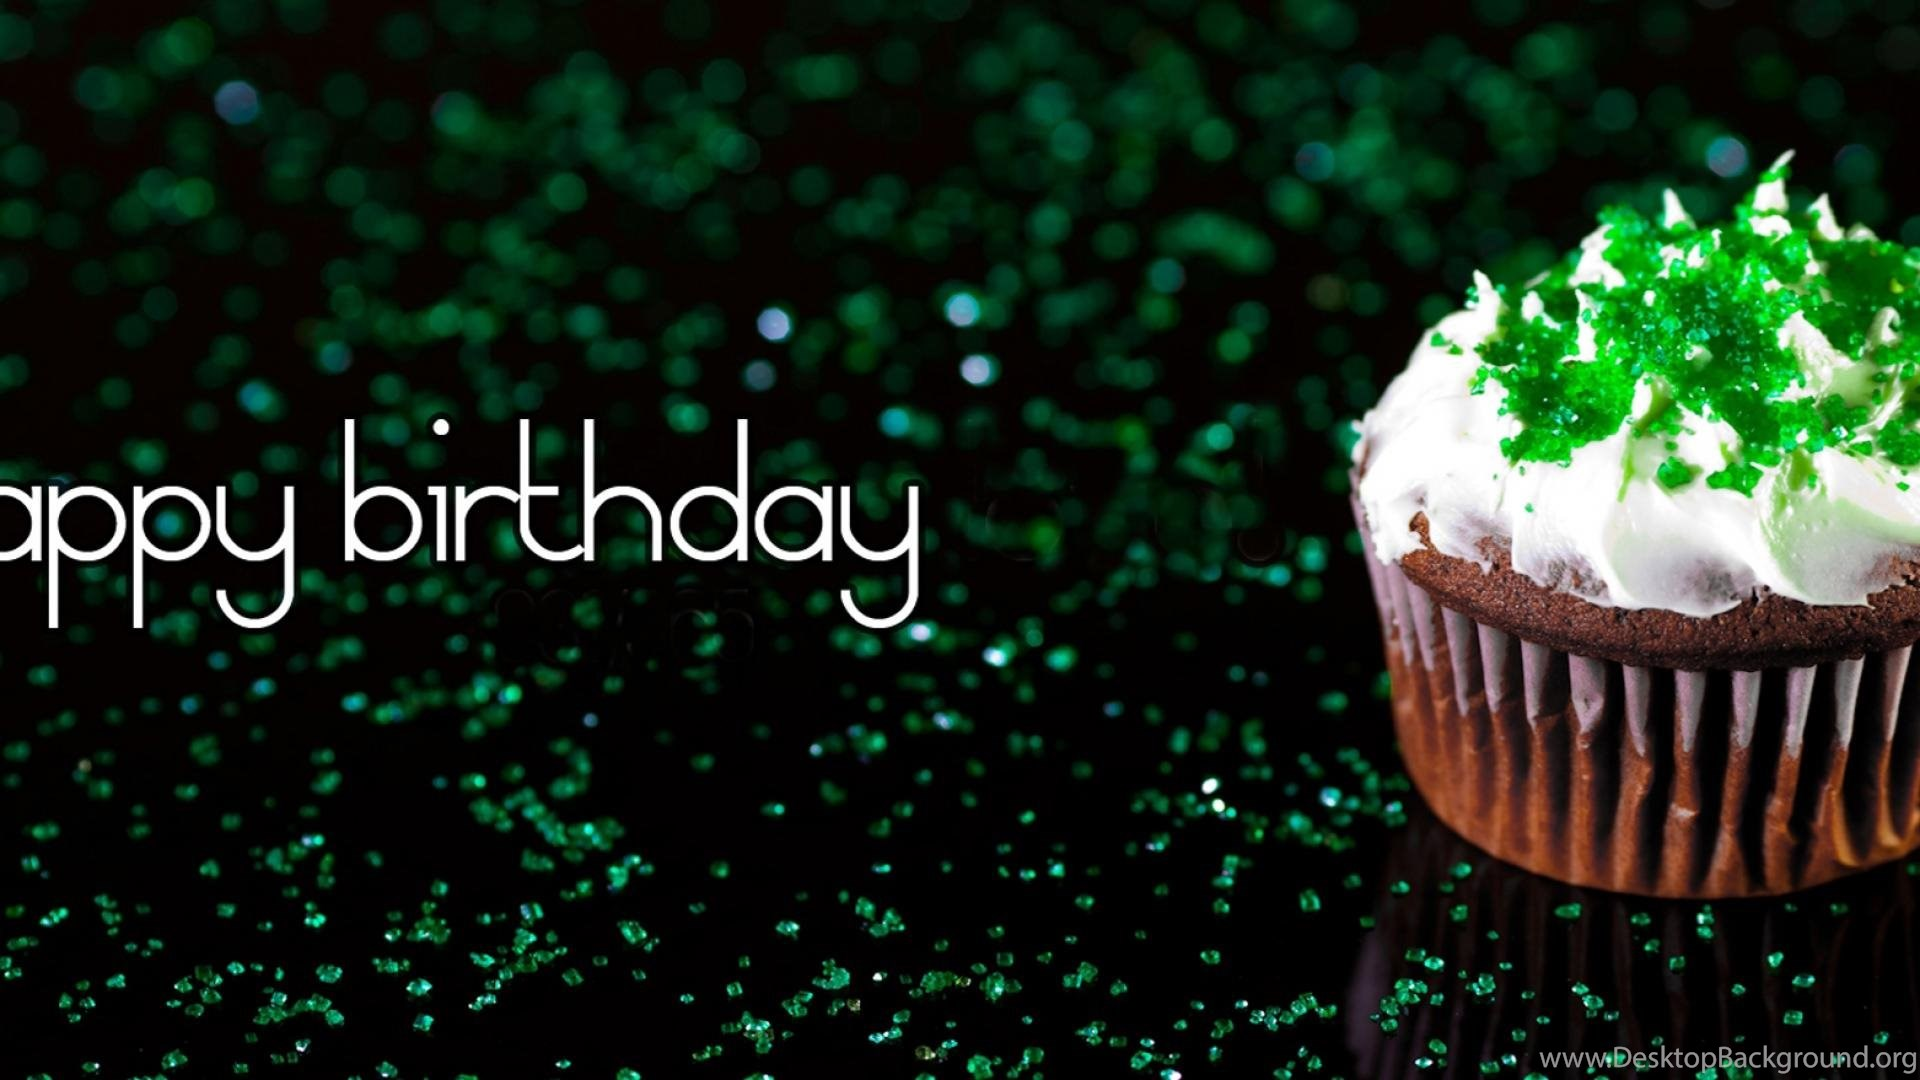 happy birthday wishes hd images ; 1054898_20-awesome-happy-birthday-hd-pictures-to-wish-your-loved-ones_1920x1080_h